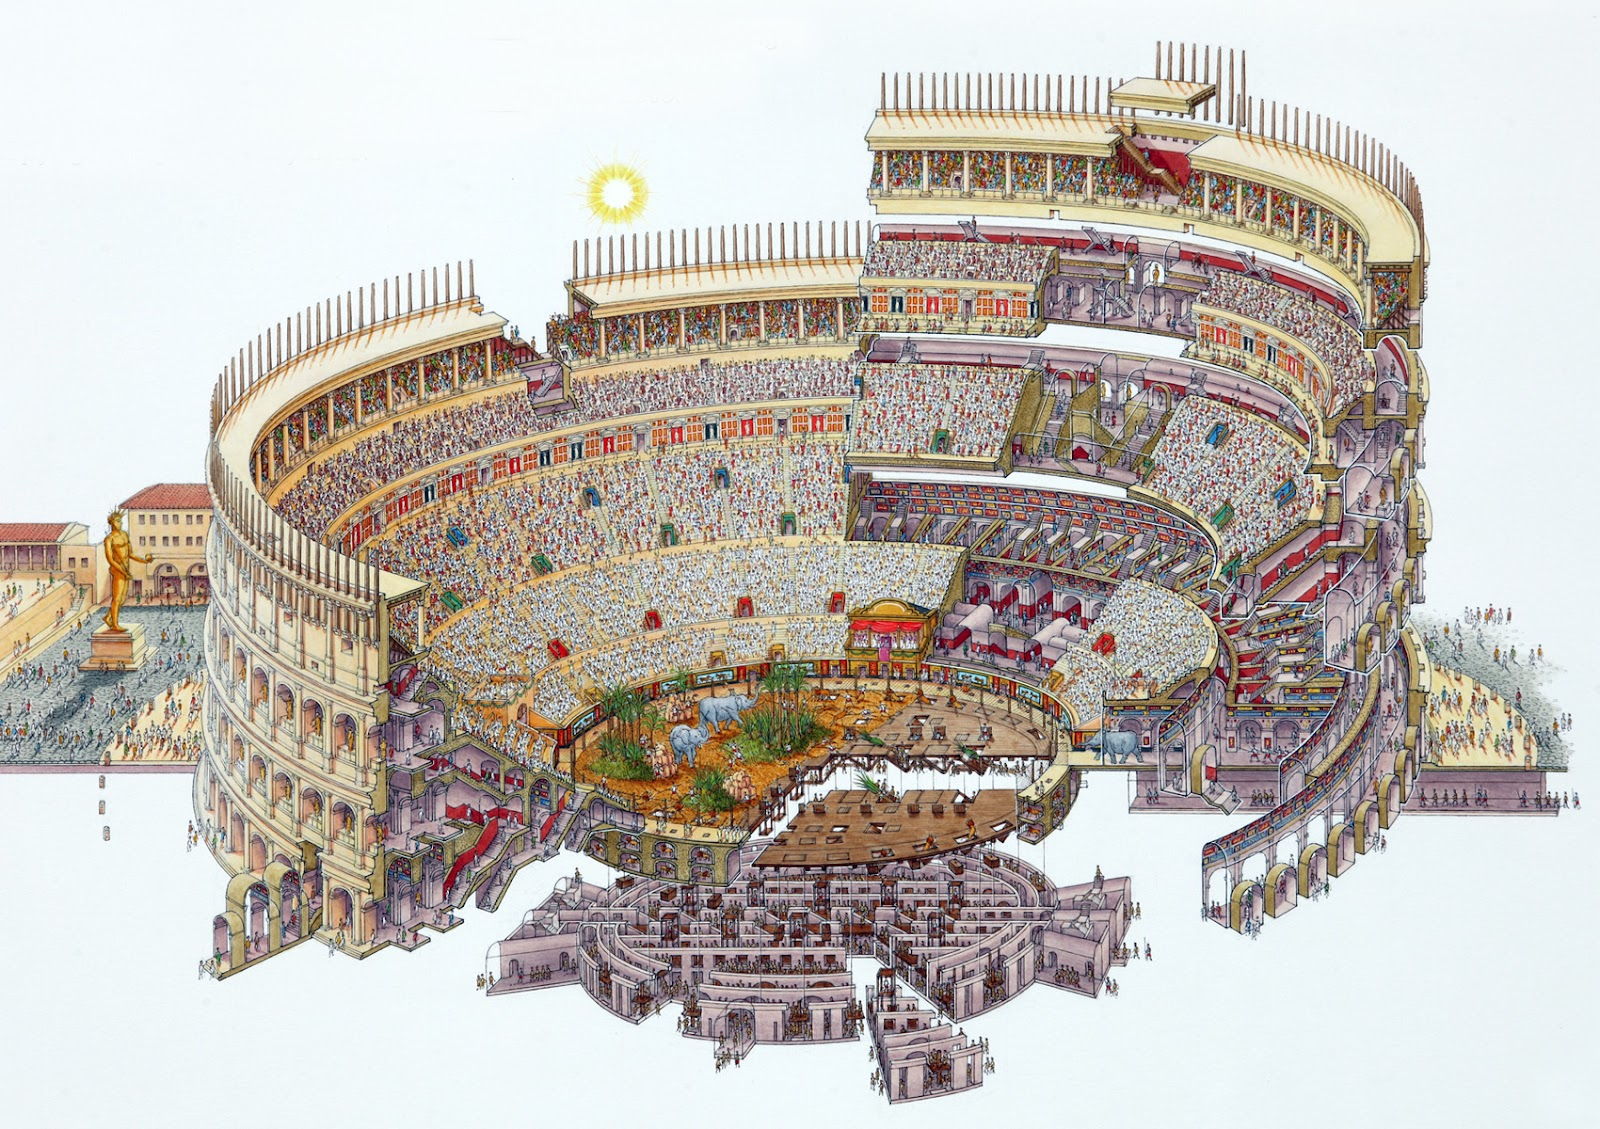 Top 5 Wonders Of The World Colosseum